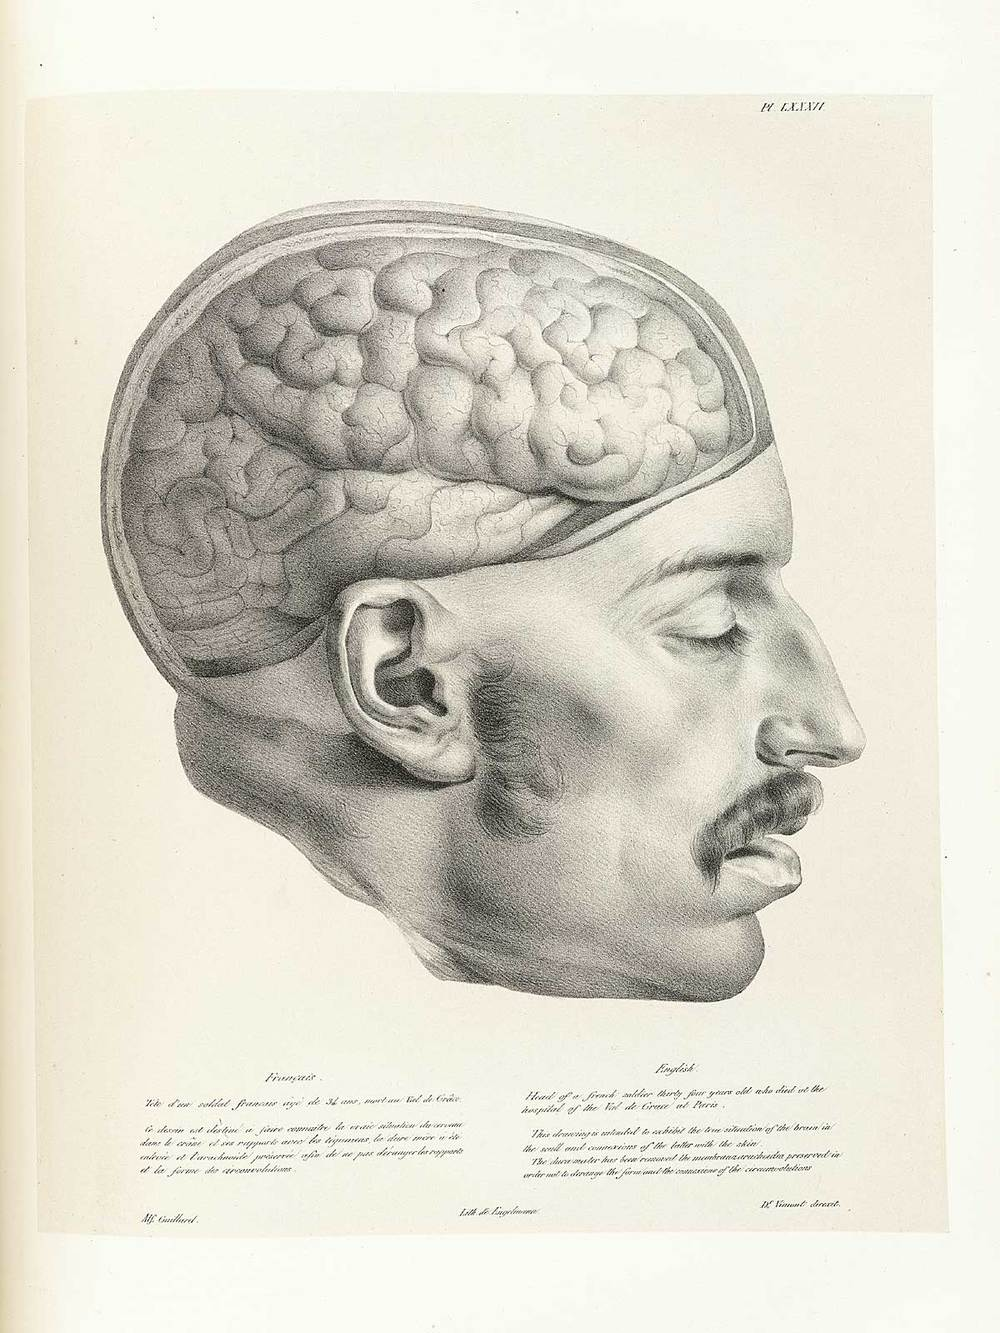 Image from: http://www.nlm.nih.gov/exhibition/historicalanatomies/vimont_home.html